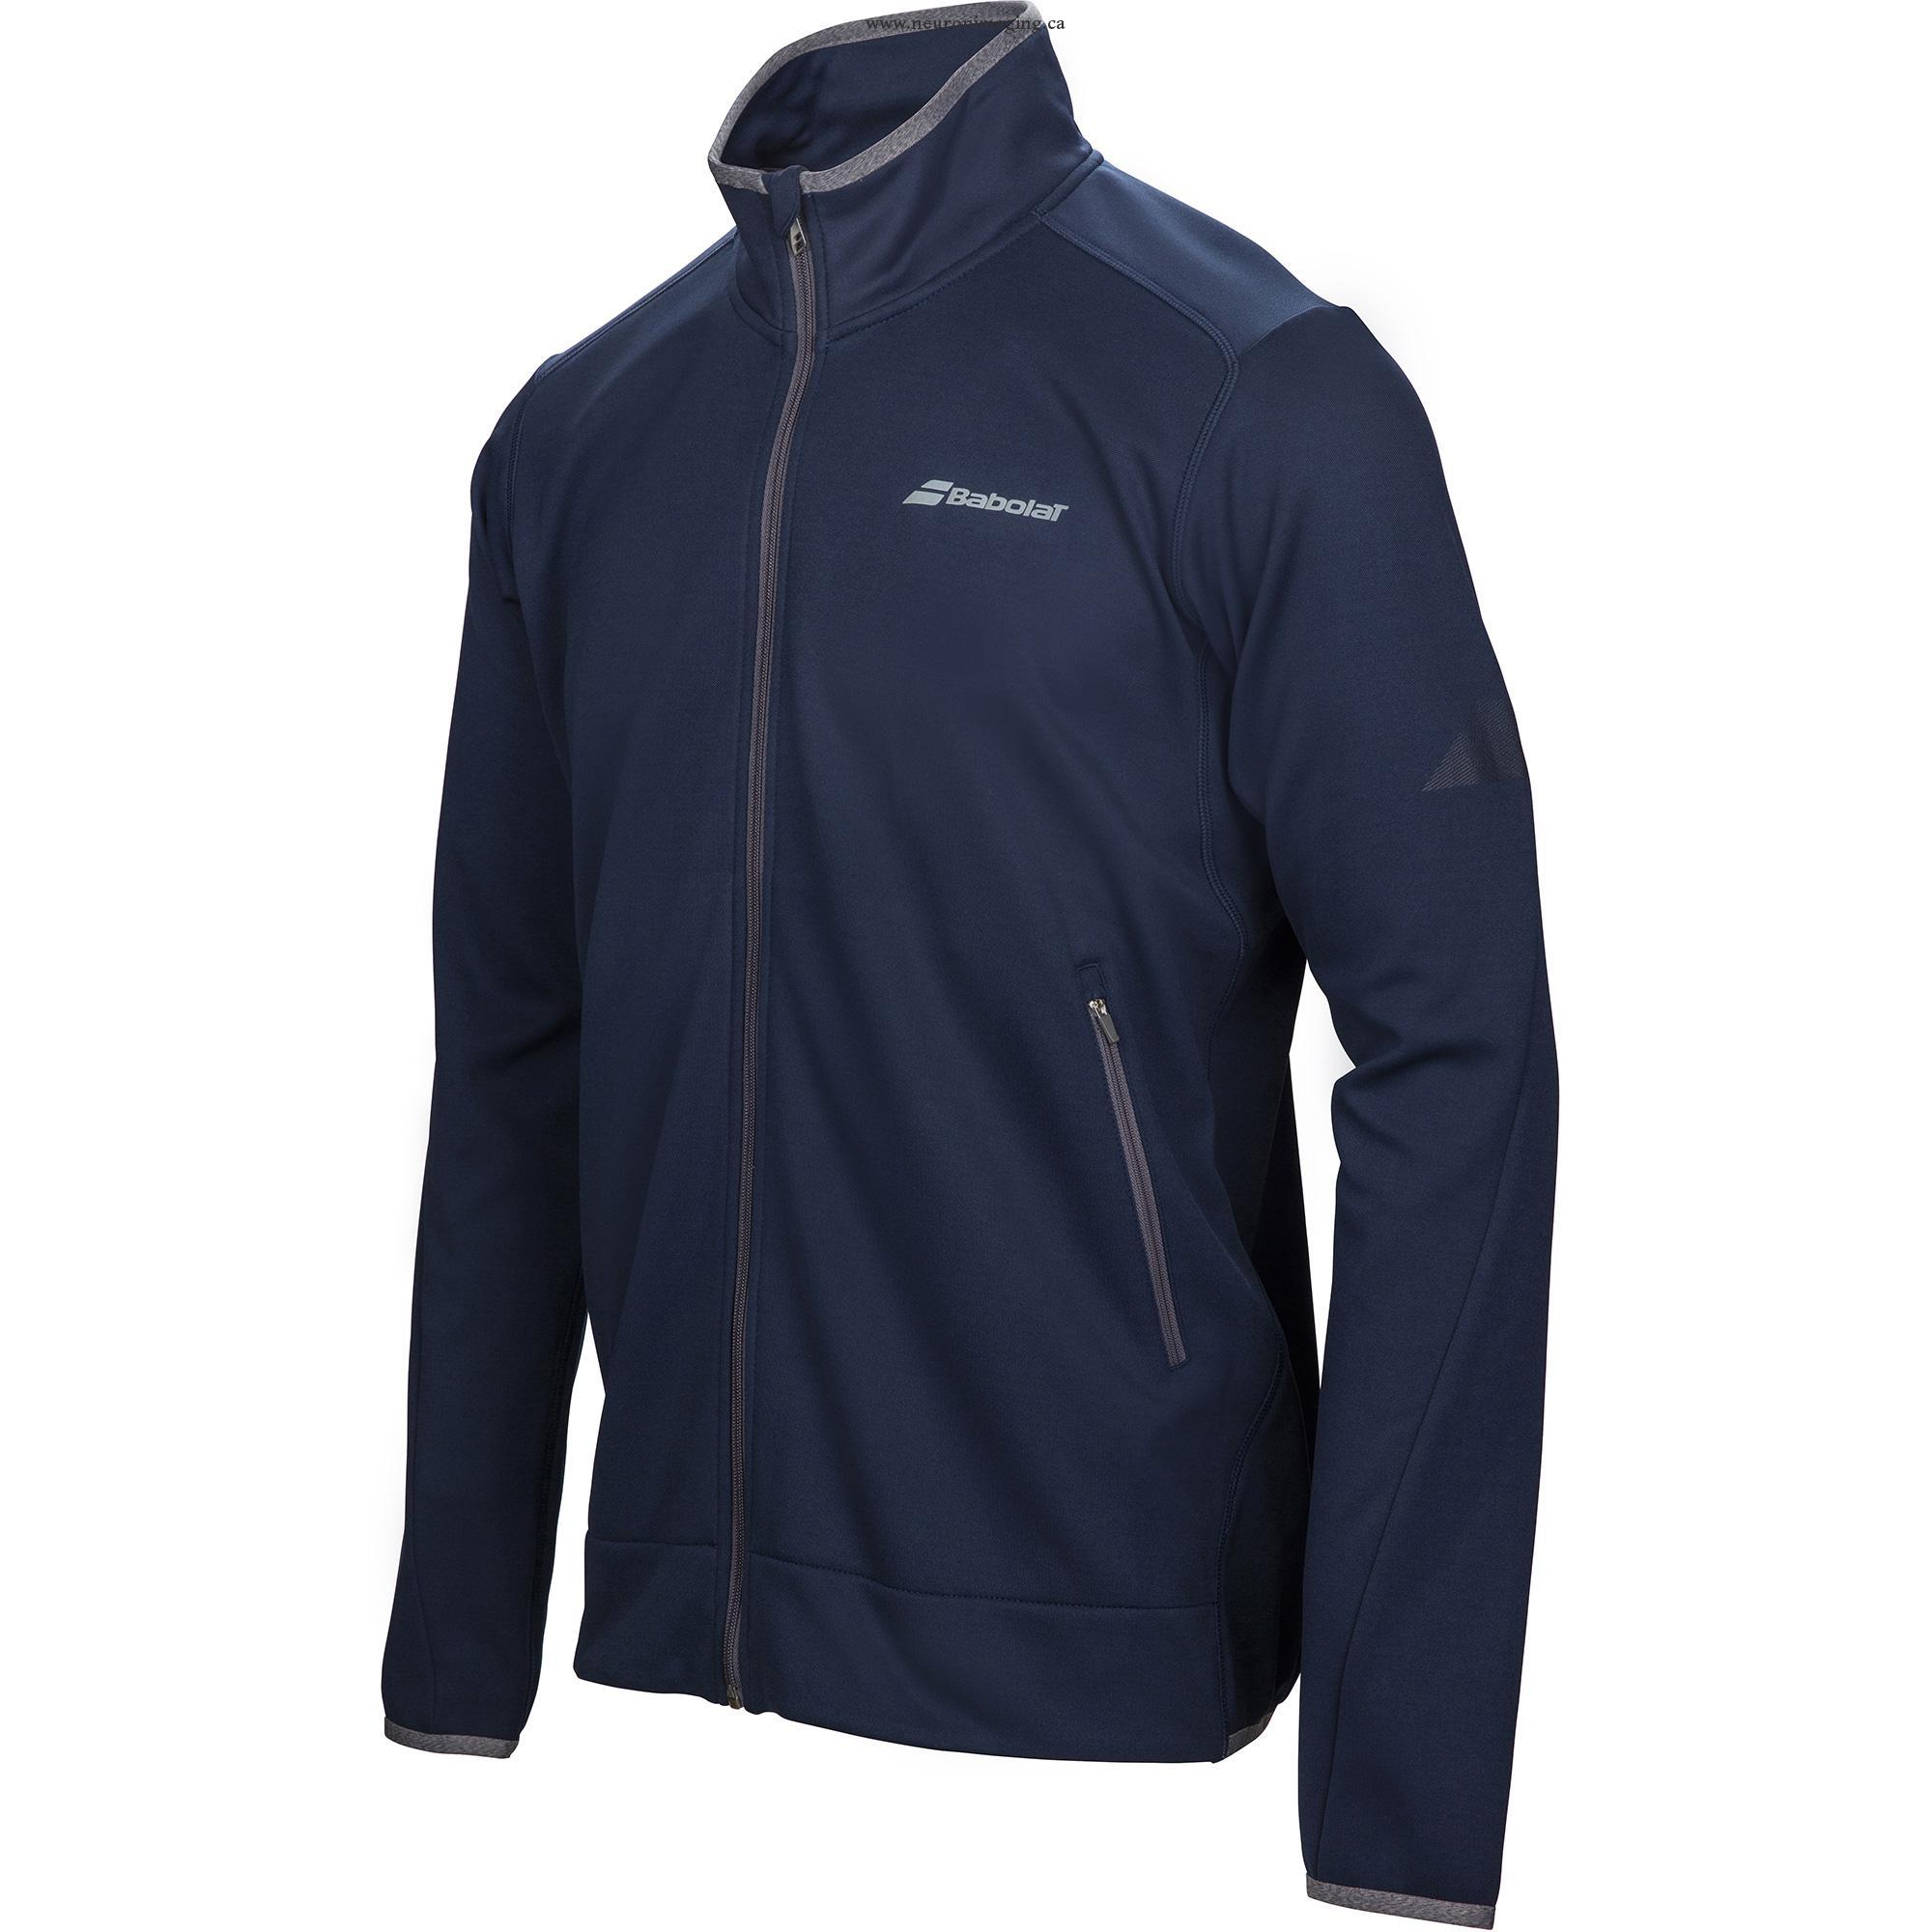 Babolat New Jacket Performance Blu Scuro Uomo